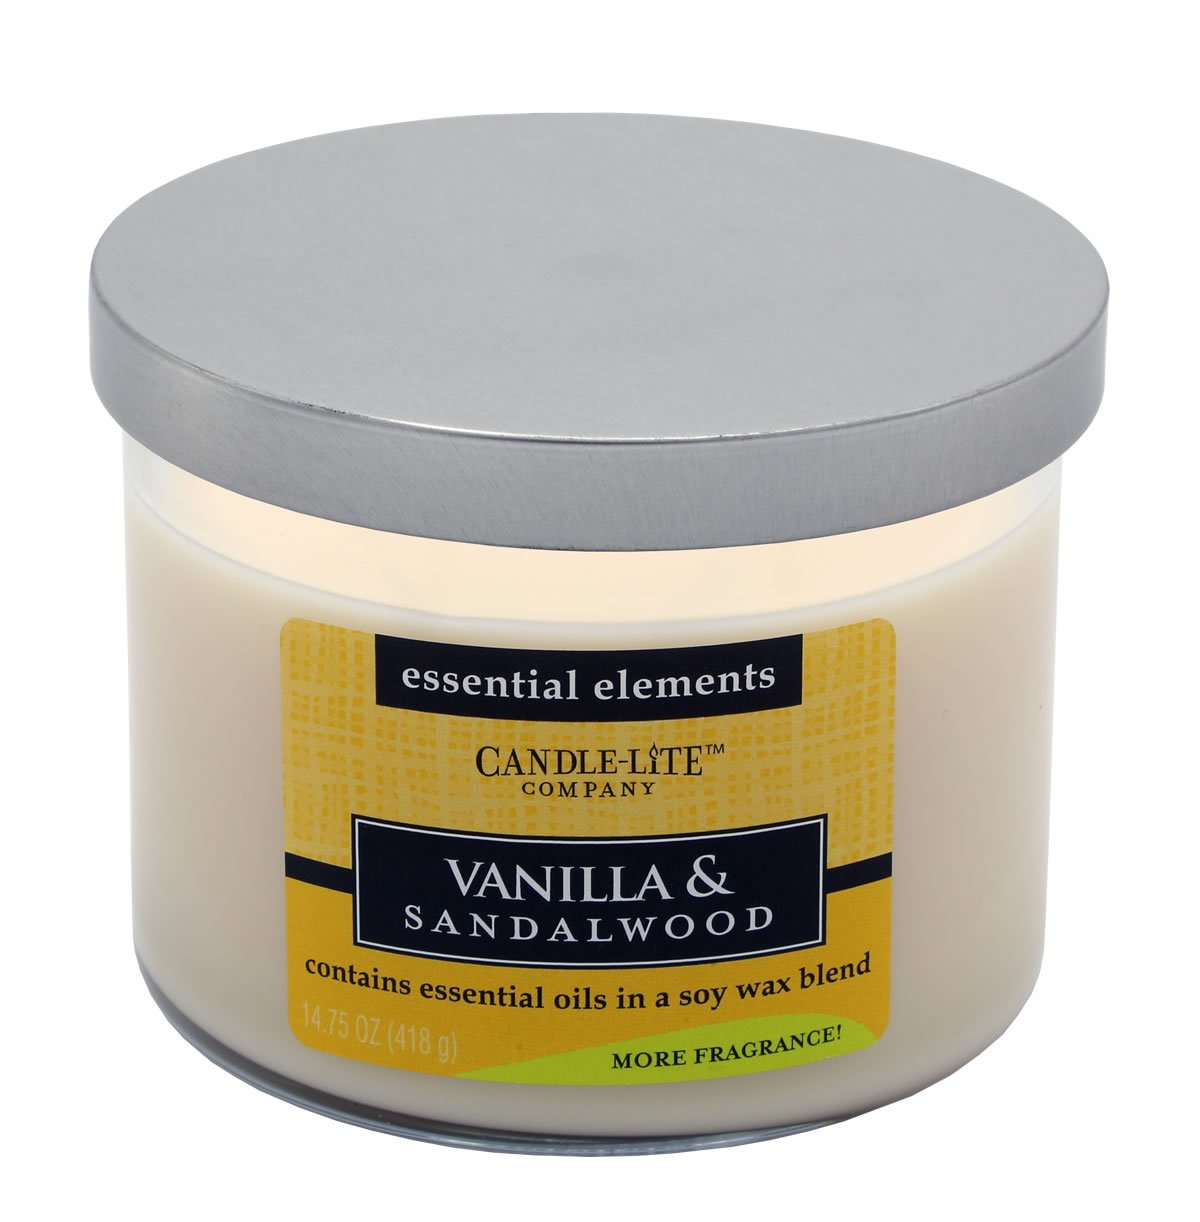 Candlelite Essential Elements 14-3/4-Ounce 3 Wick Candle with Soy Wax, Vanilla and Sandalwood by Candlelite (Image #2)